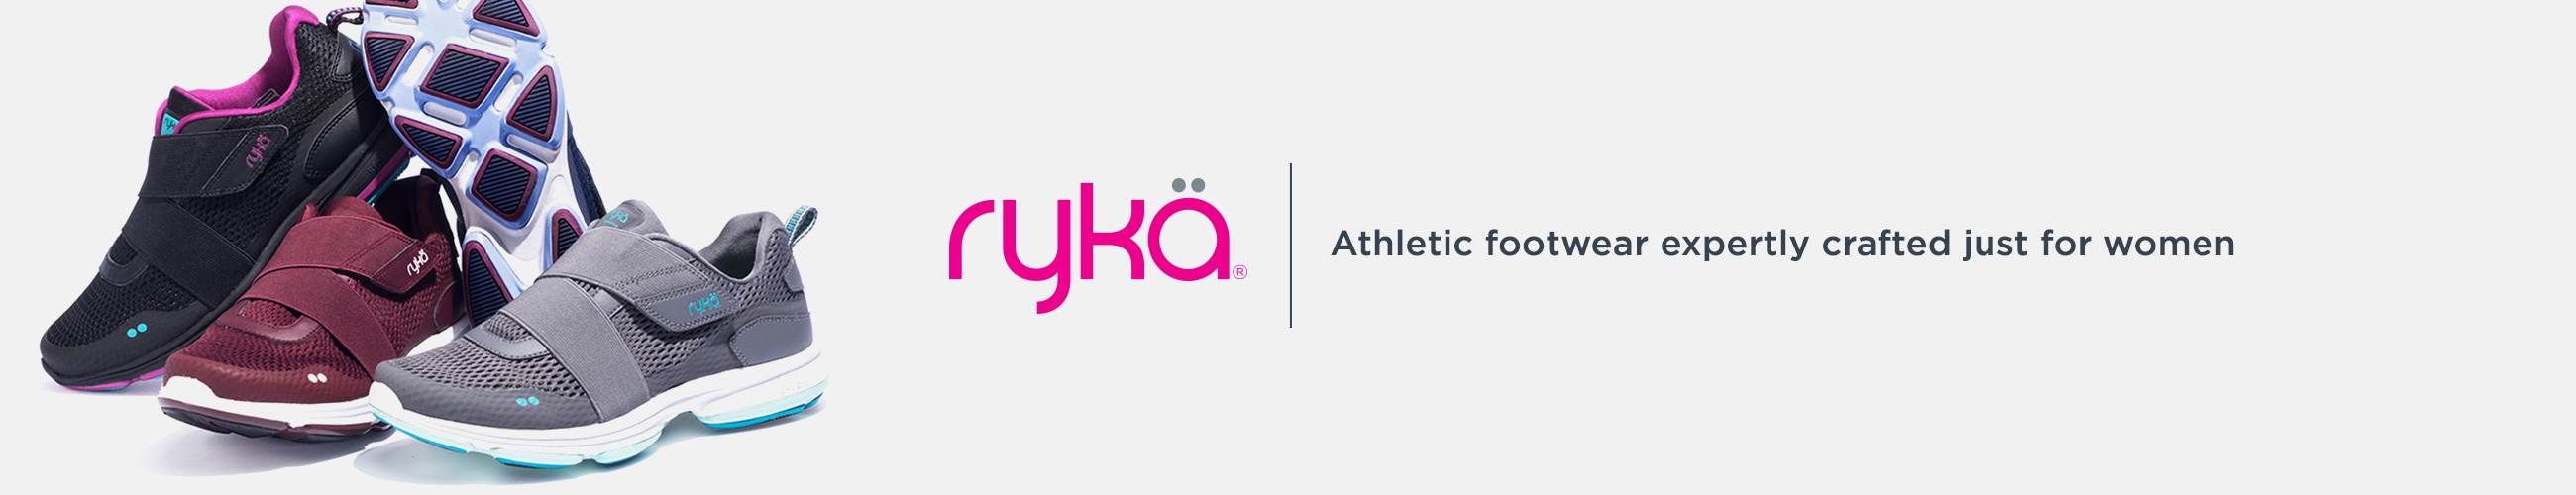 Rykä. Athletic footwear expertly crafted just for women